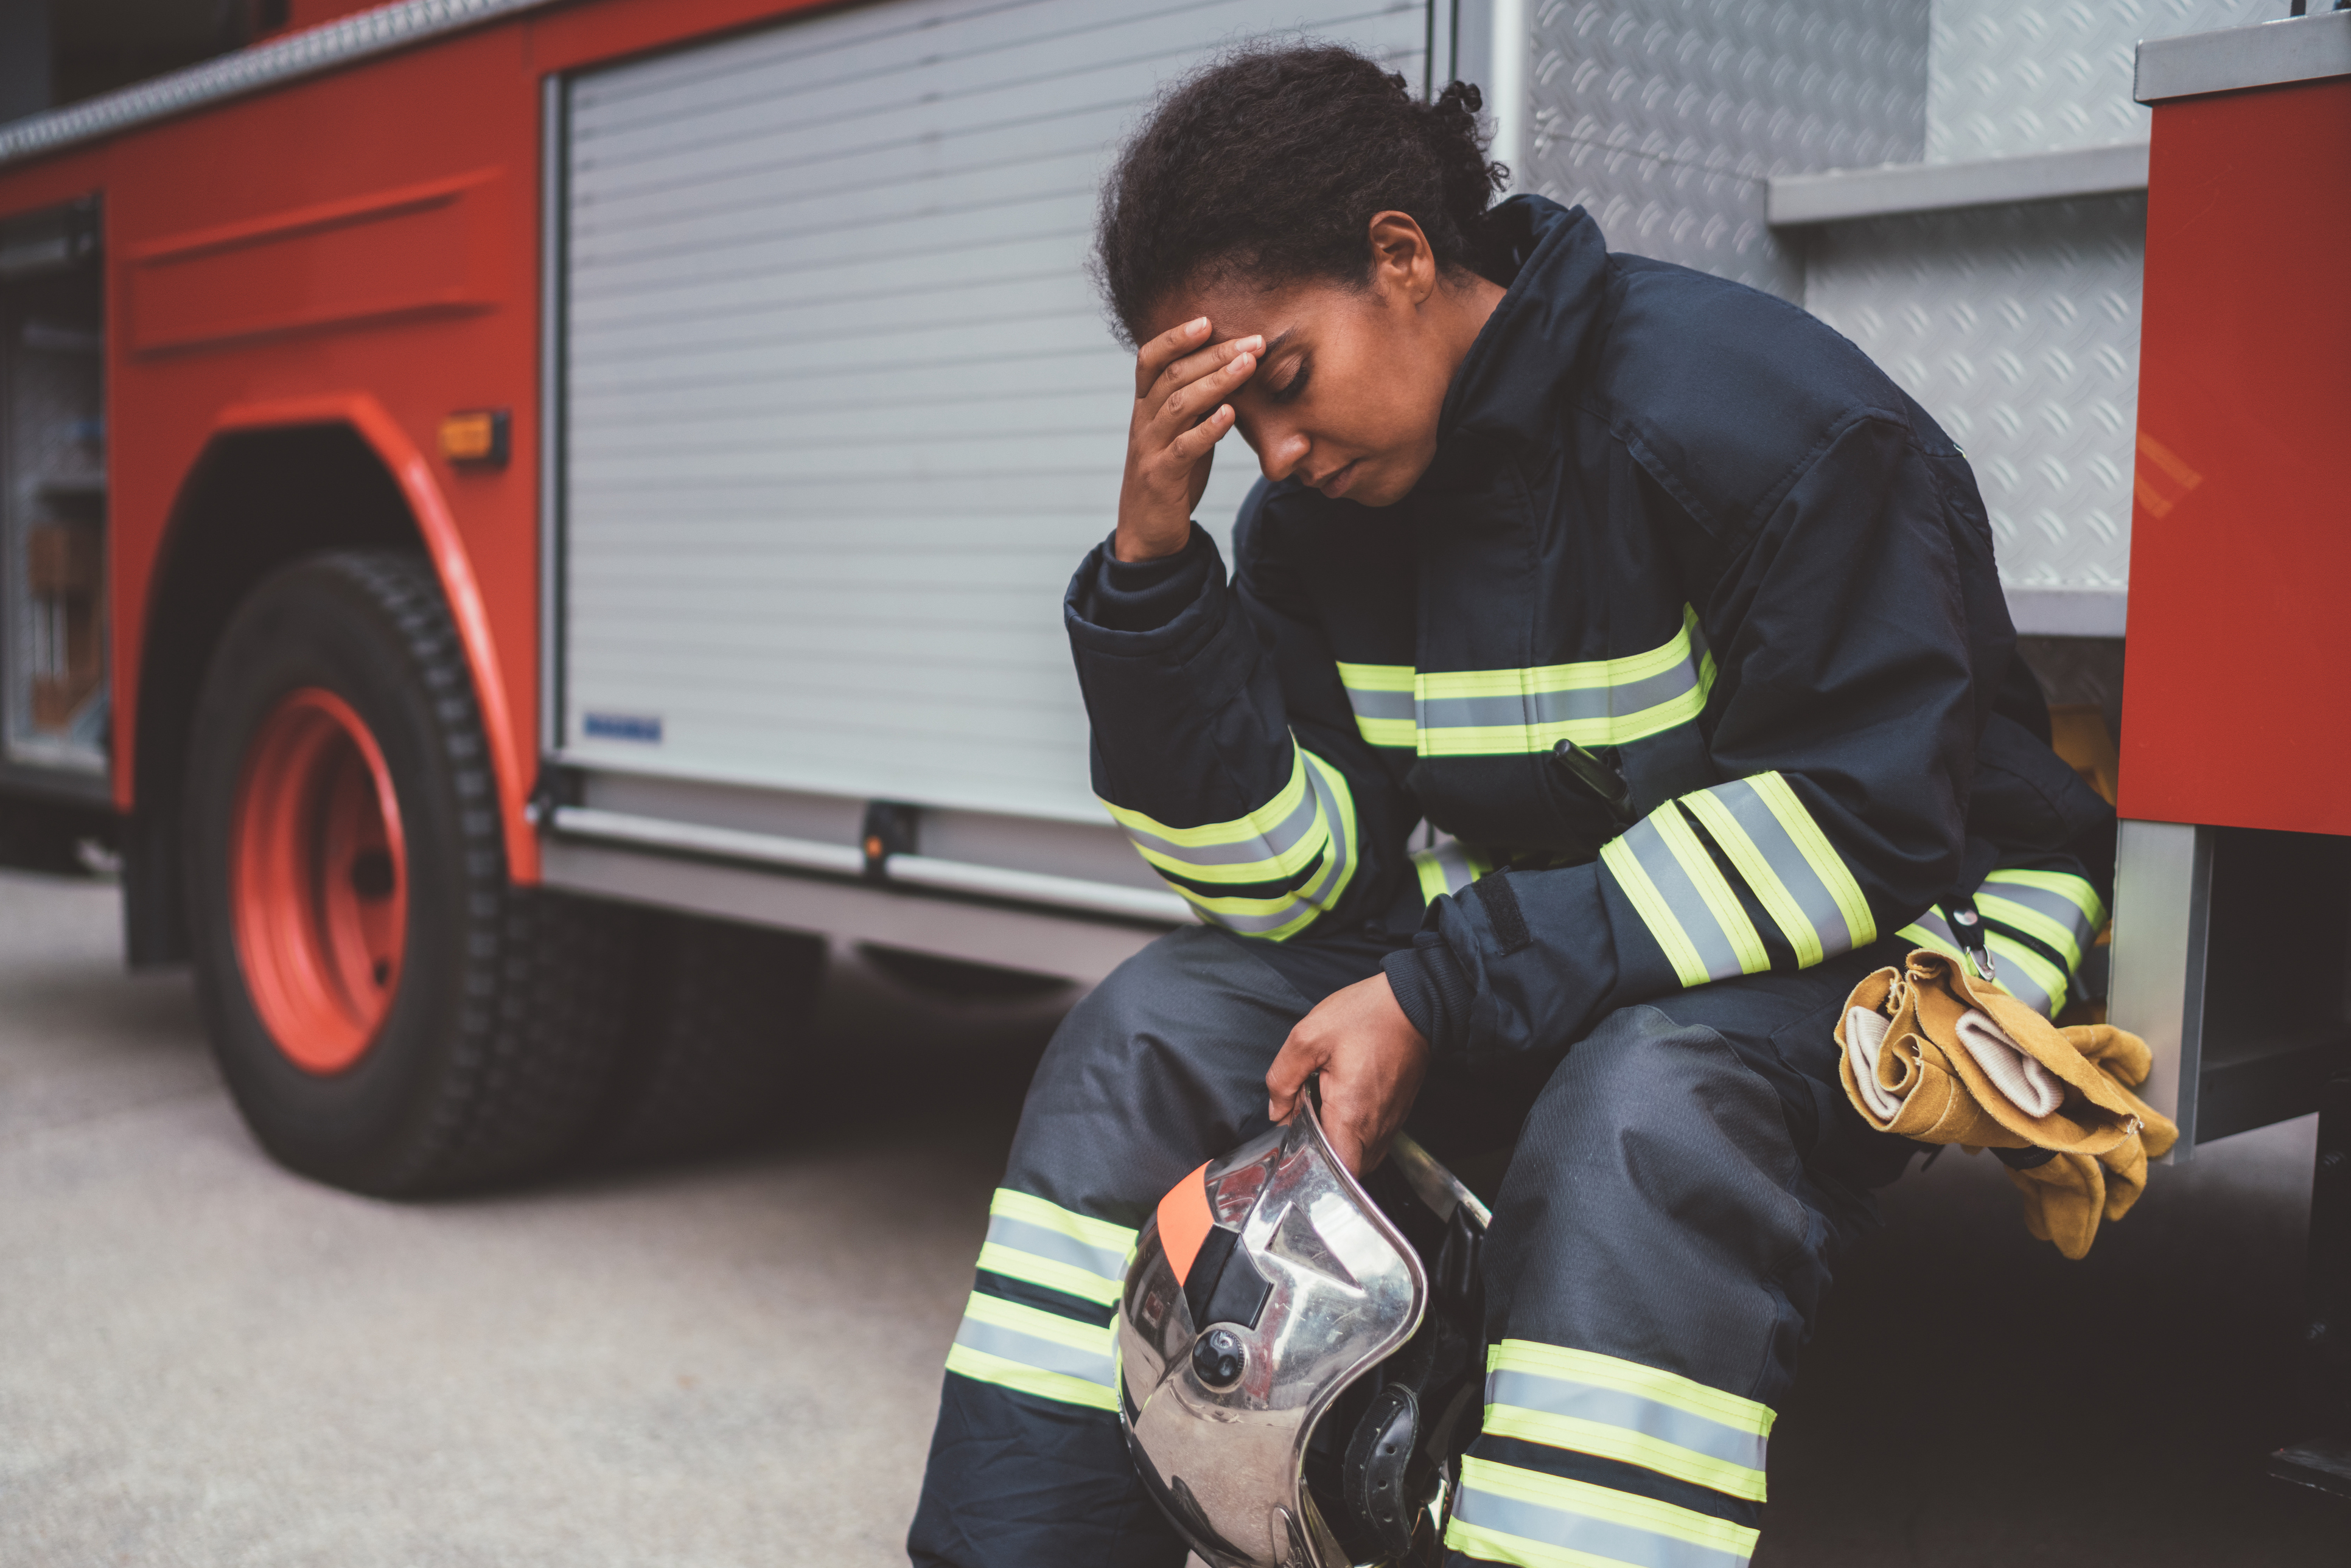 Unhappy firefighter sitting at the firefighter truck after failure on rescue operation